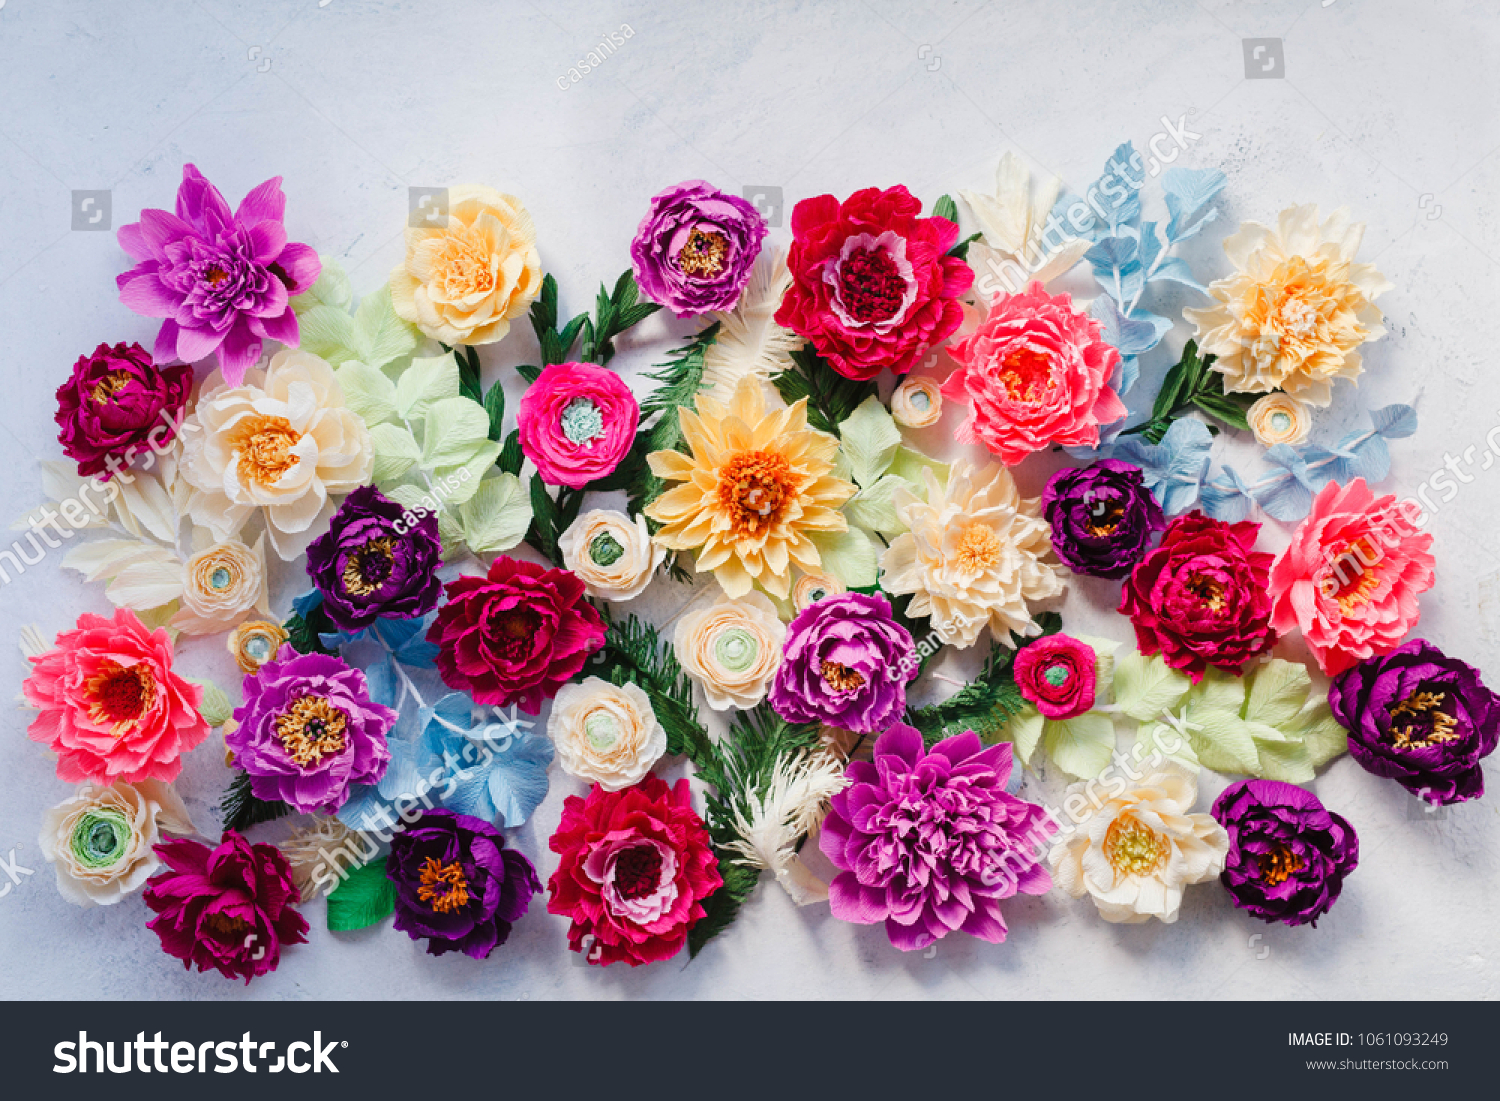 Craft Paper Flowers Backdrop Floral Design Stock Photo Edit Now